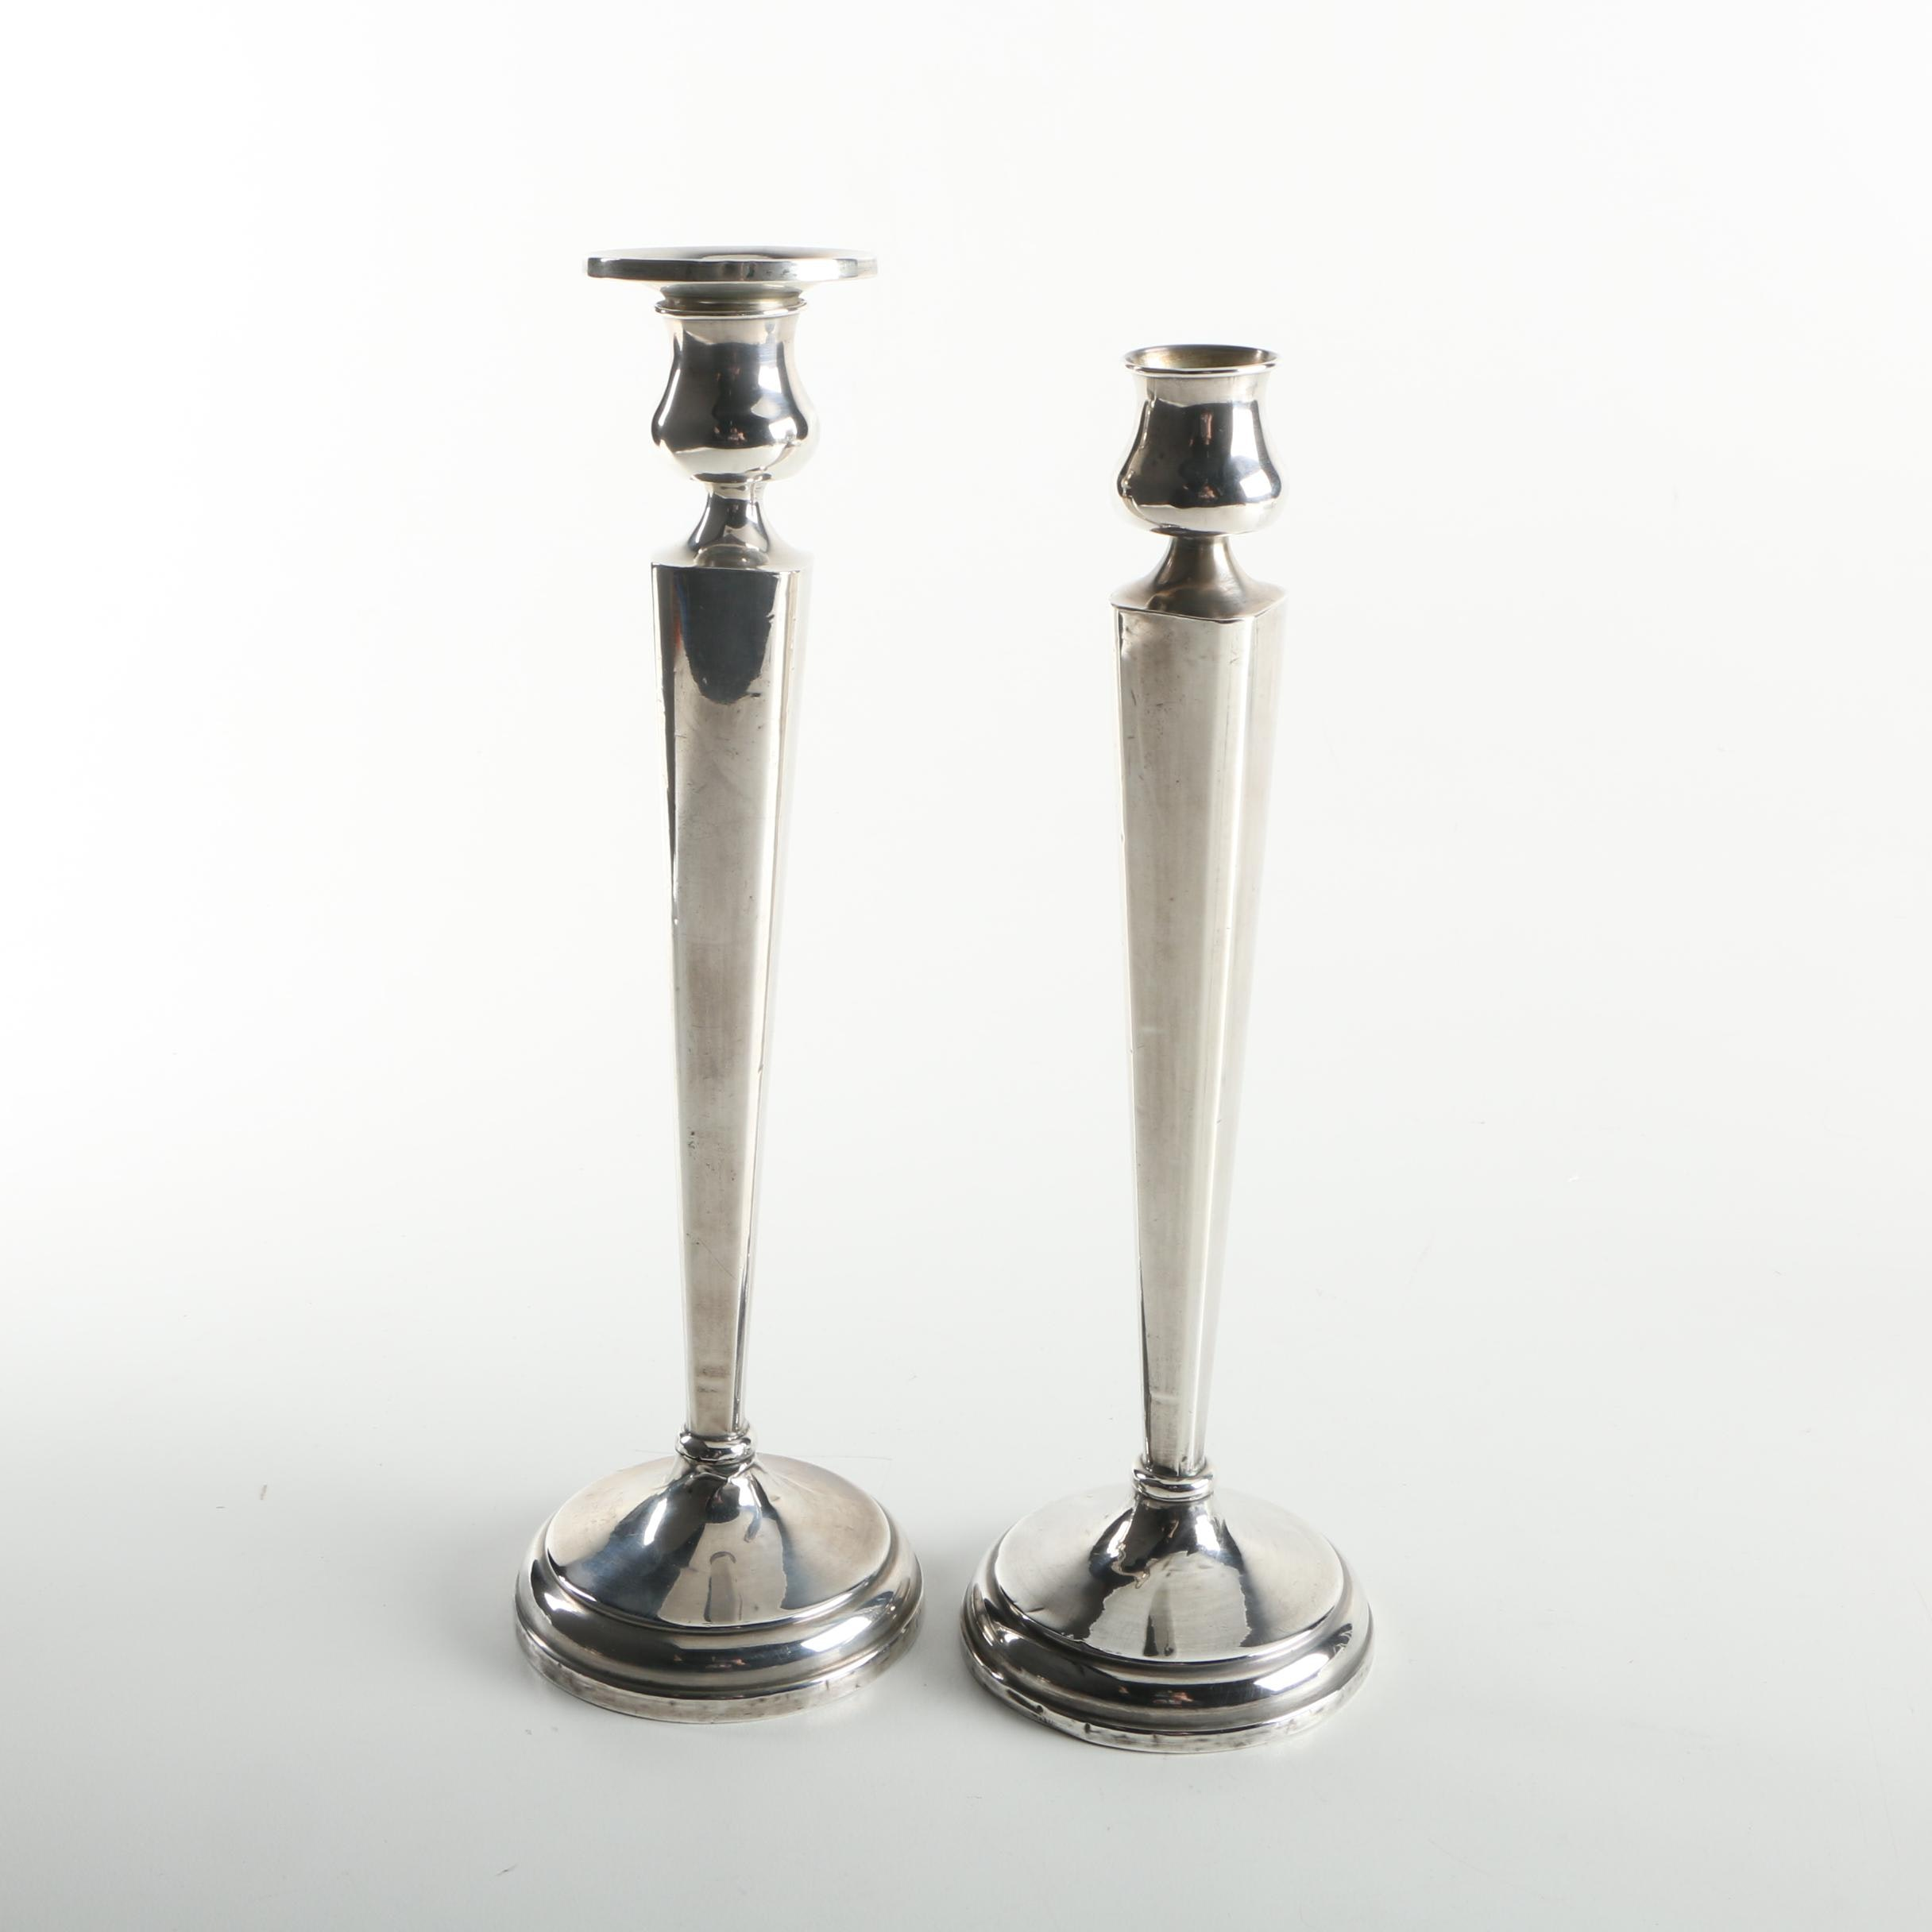 Pair of Hallmark Reinforced Sterling Silver Candleholders